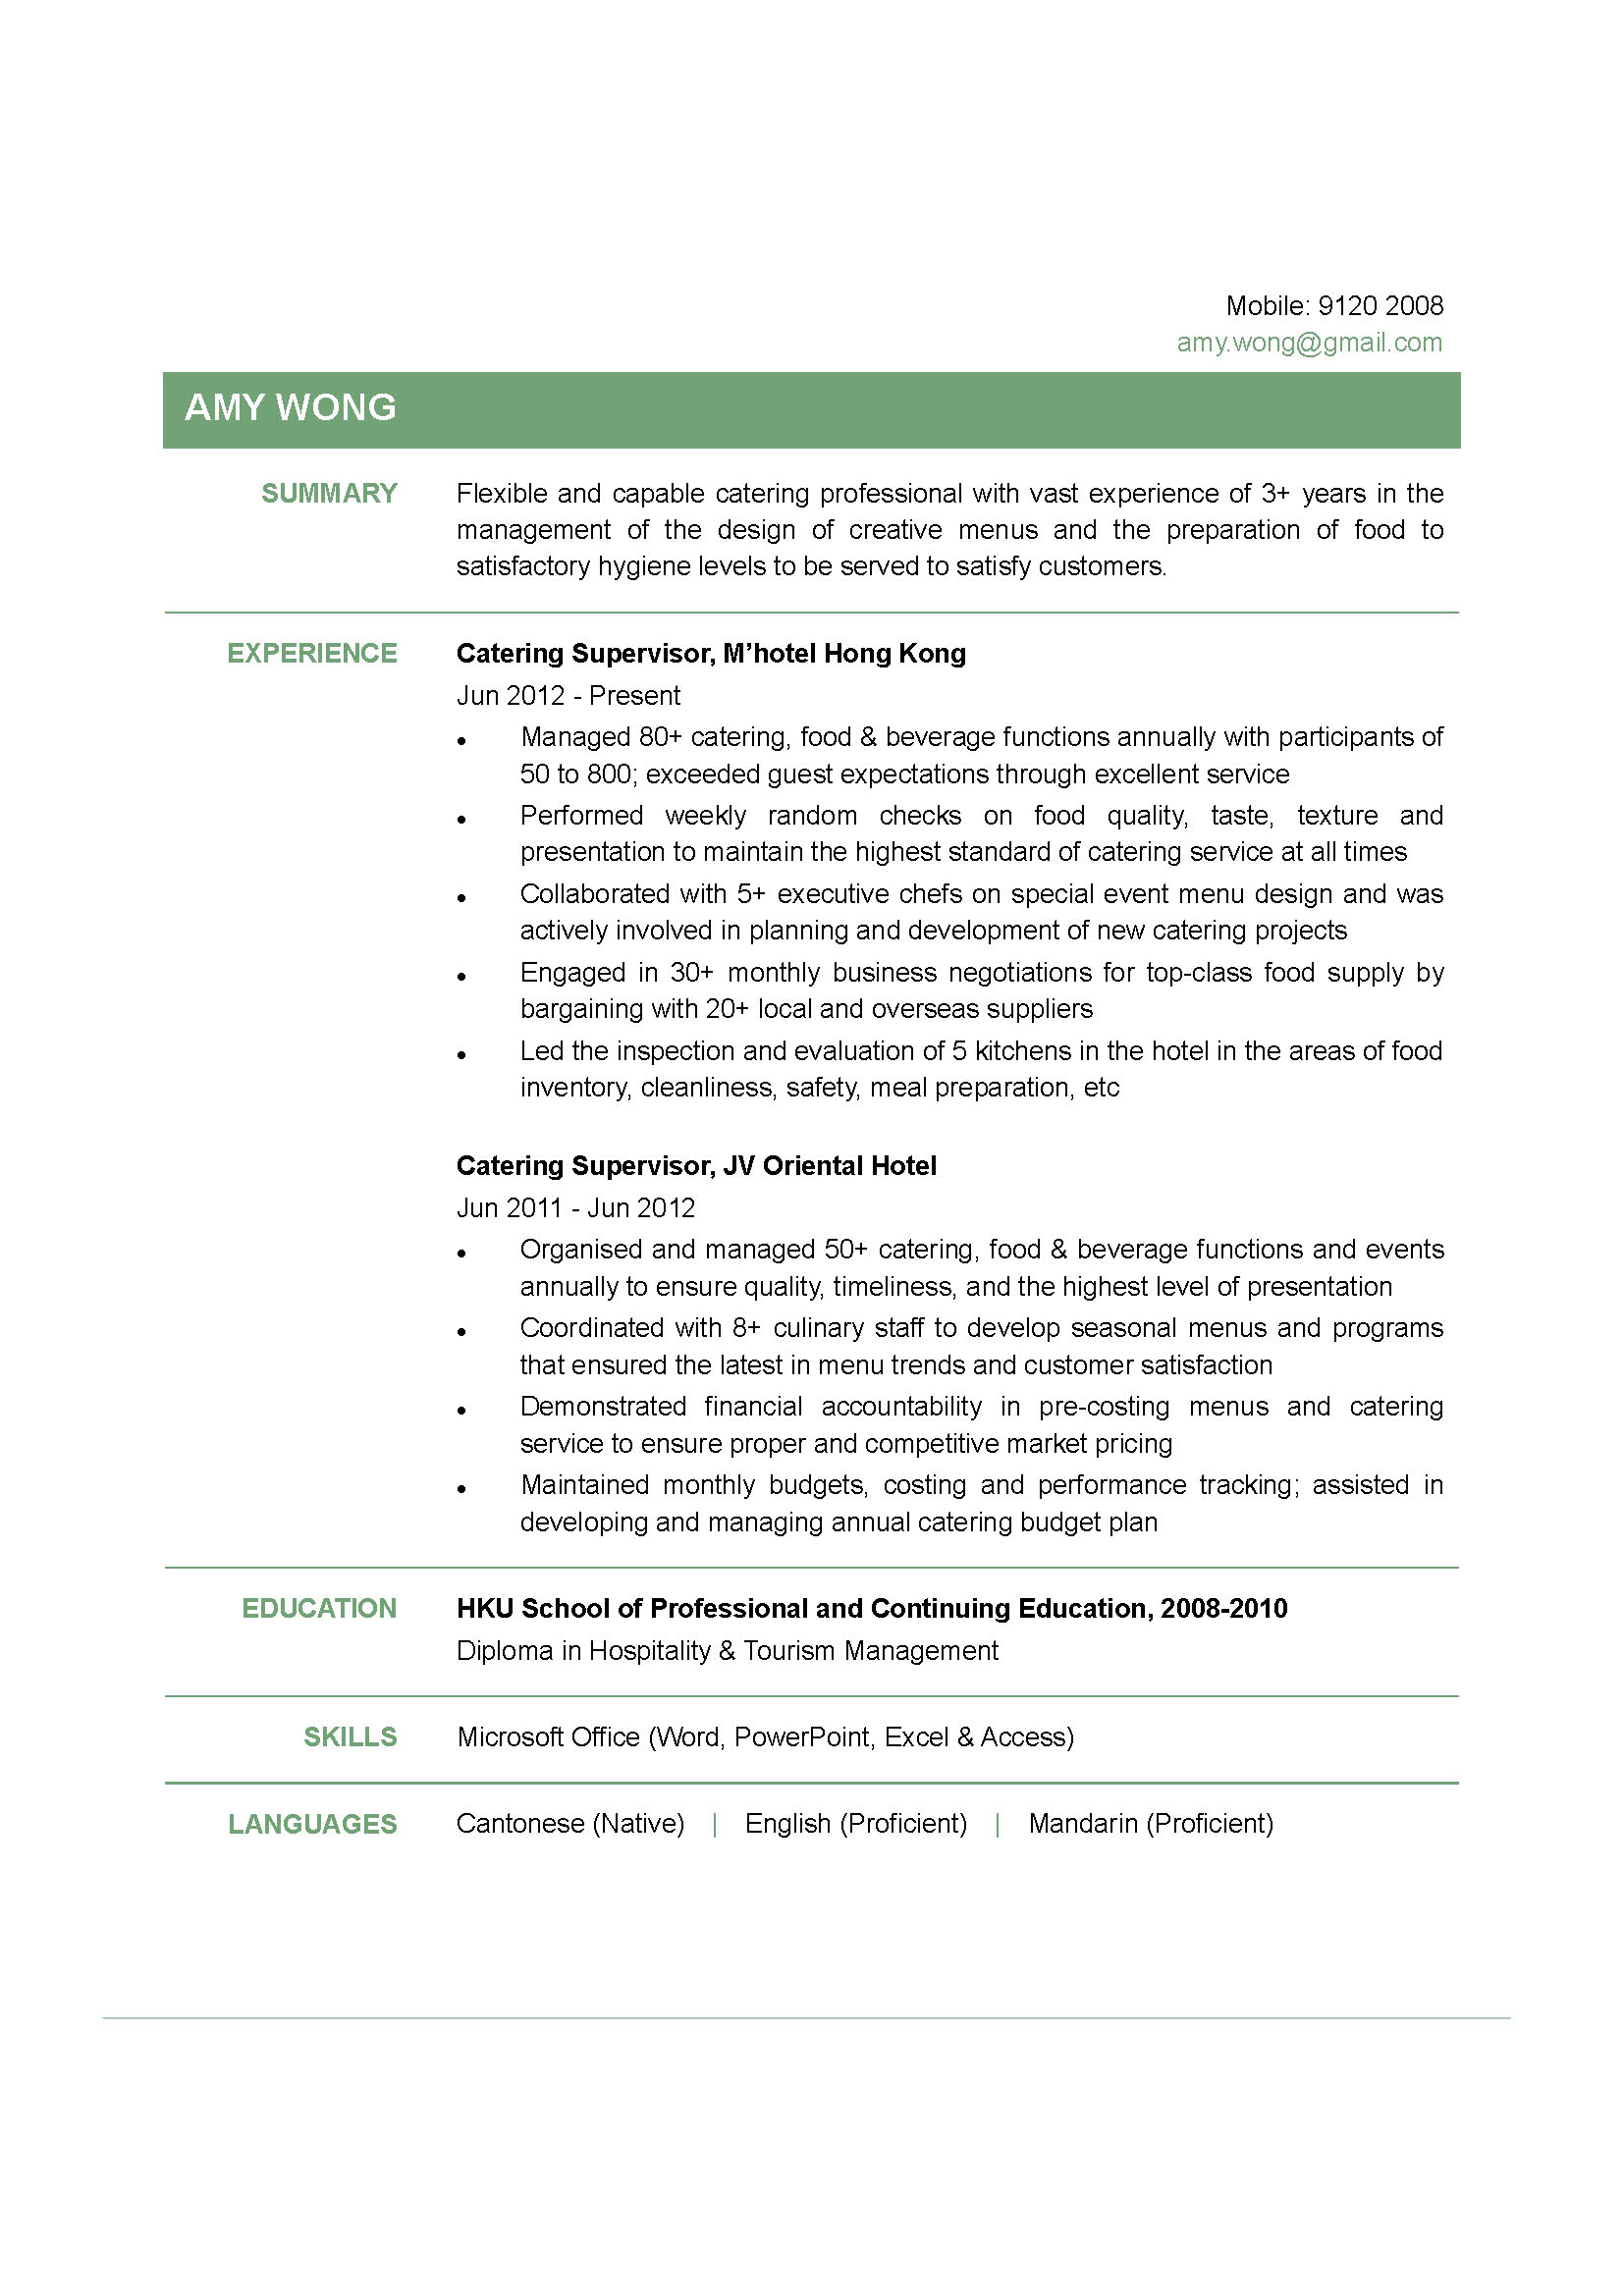 cv community service customer service resume example cv community service corporation for national and community service catering supervisor cv ctgoodjobs powered by career